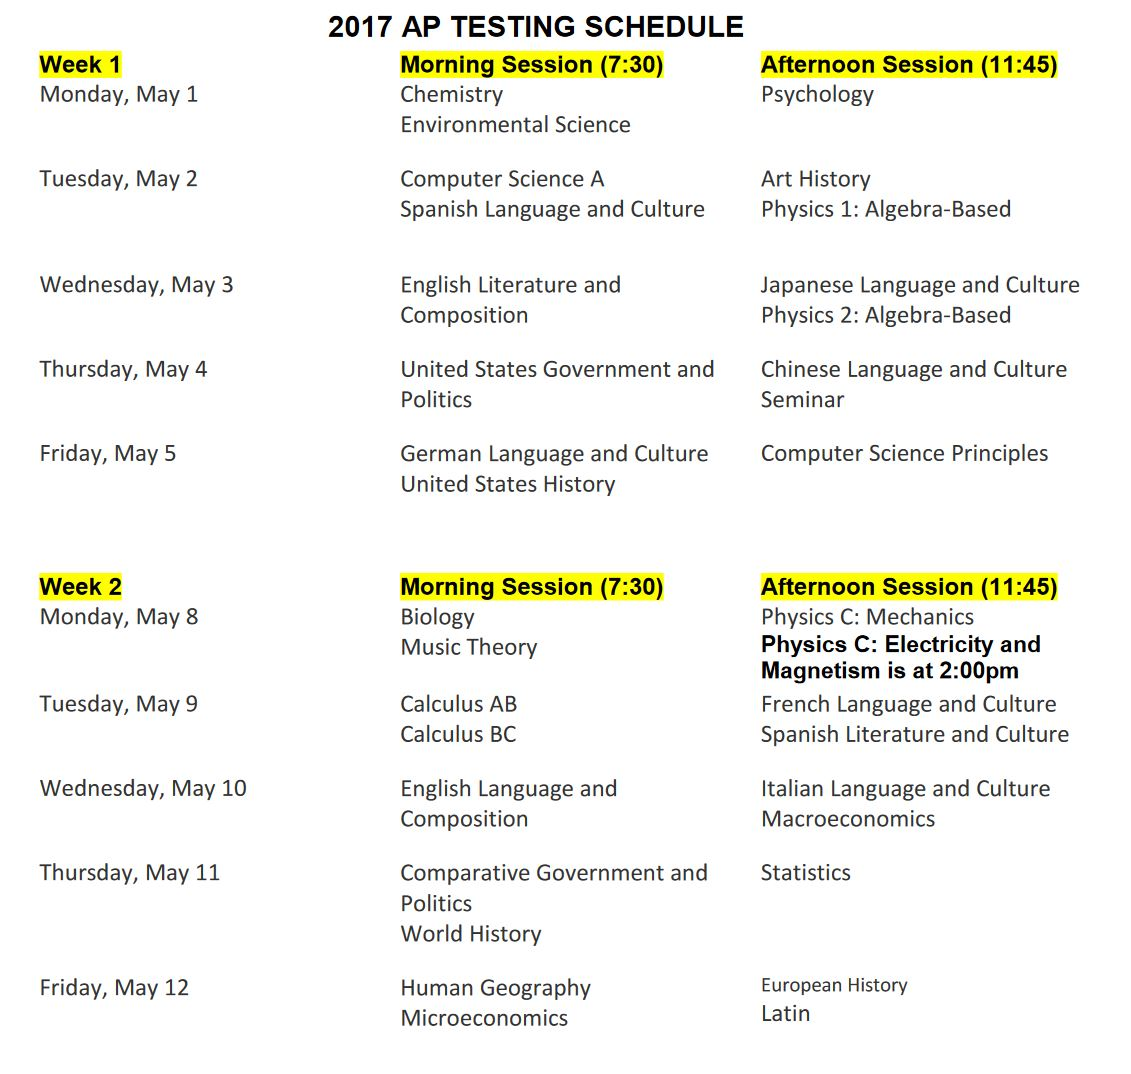 Ap testing dates in Melbourne